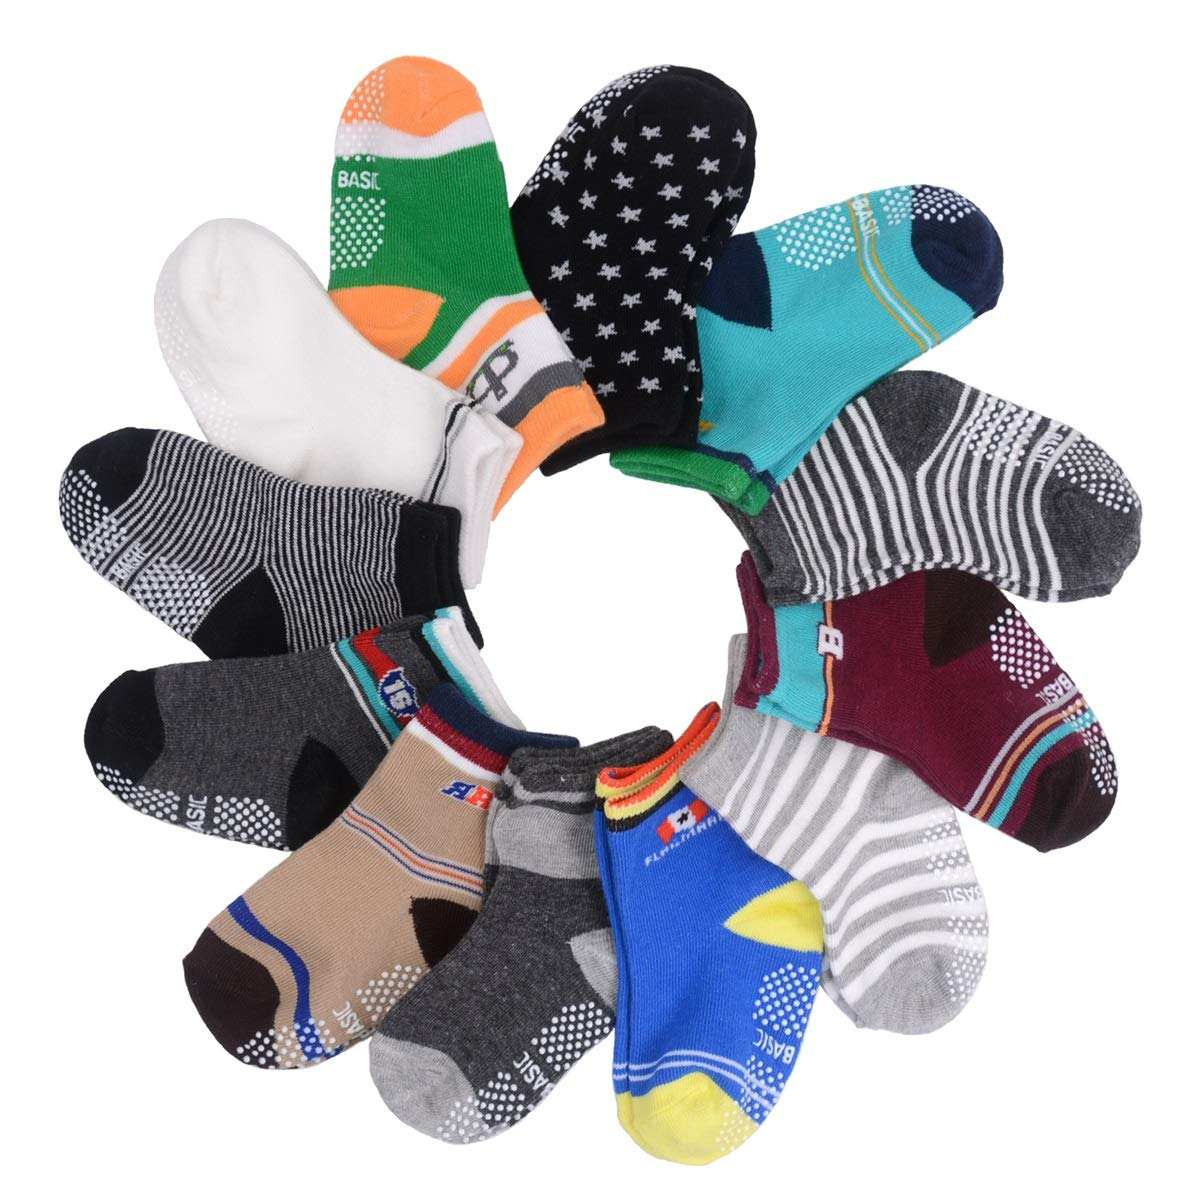 12 Pairs Baby Socks with Grips Non Skid Anti Slip Ankle Socks for Walker Toddler Kids 12-24 Months